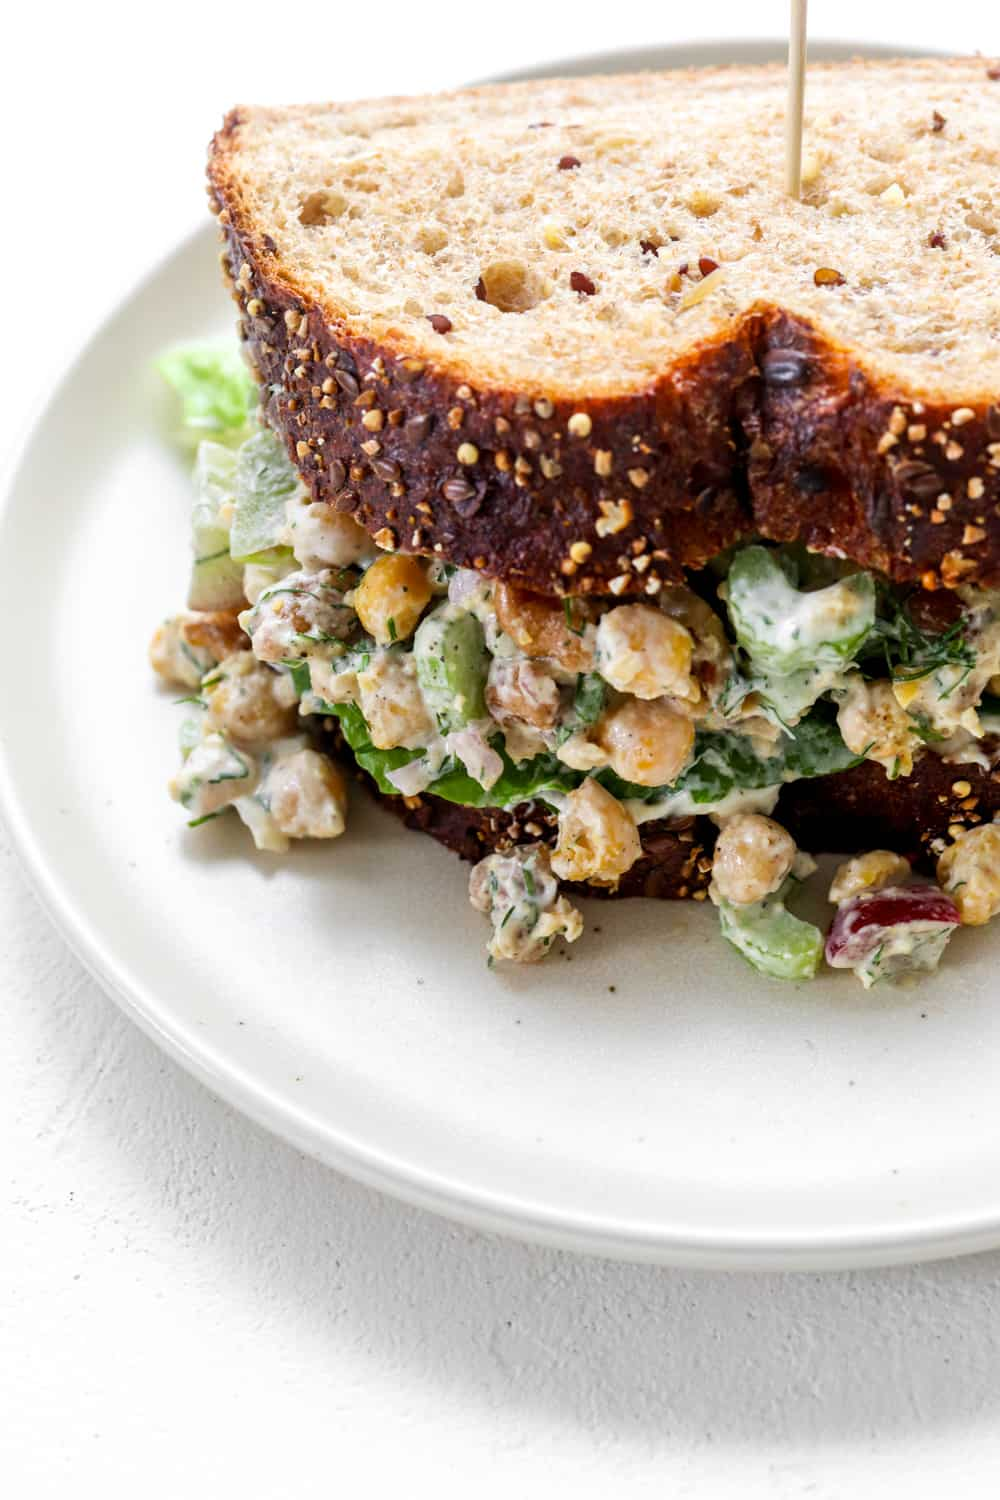 Chickpea chicken salad between two thick slices of whole grain bread on a round white plate